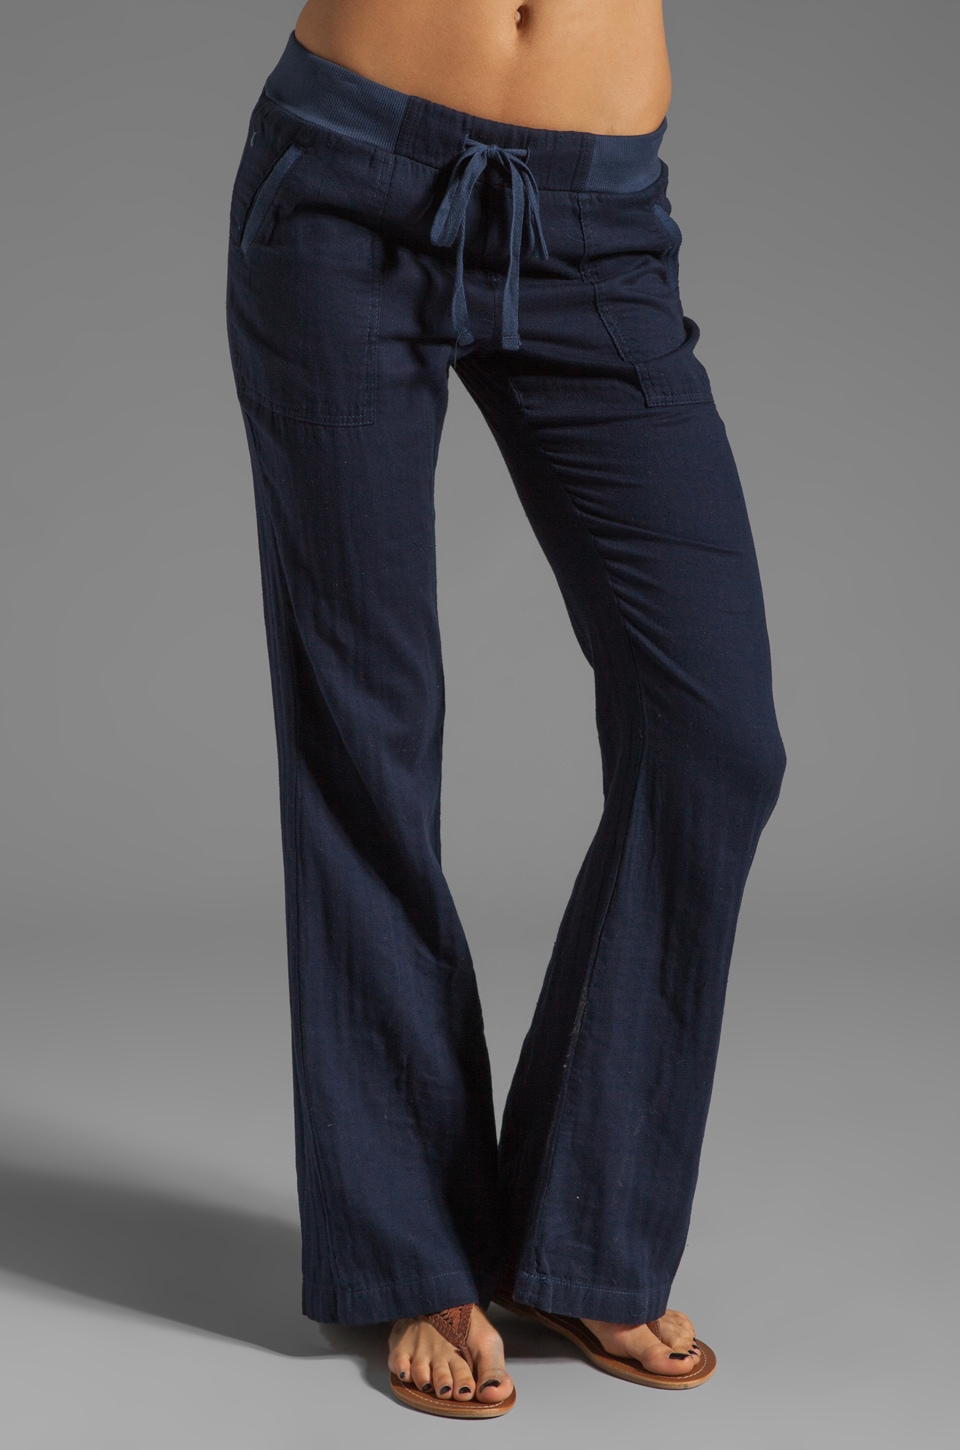 Splendid Double Cloth Pant in Navy